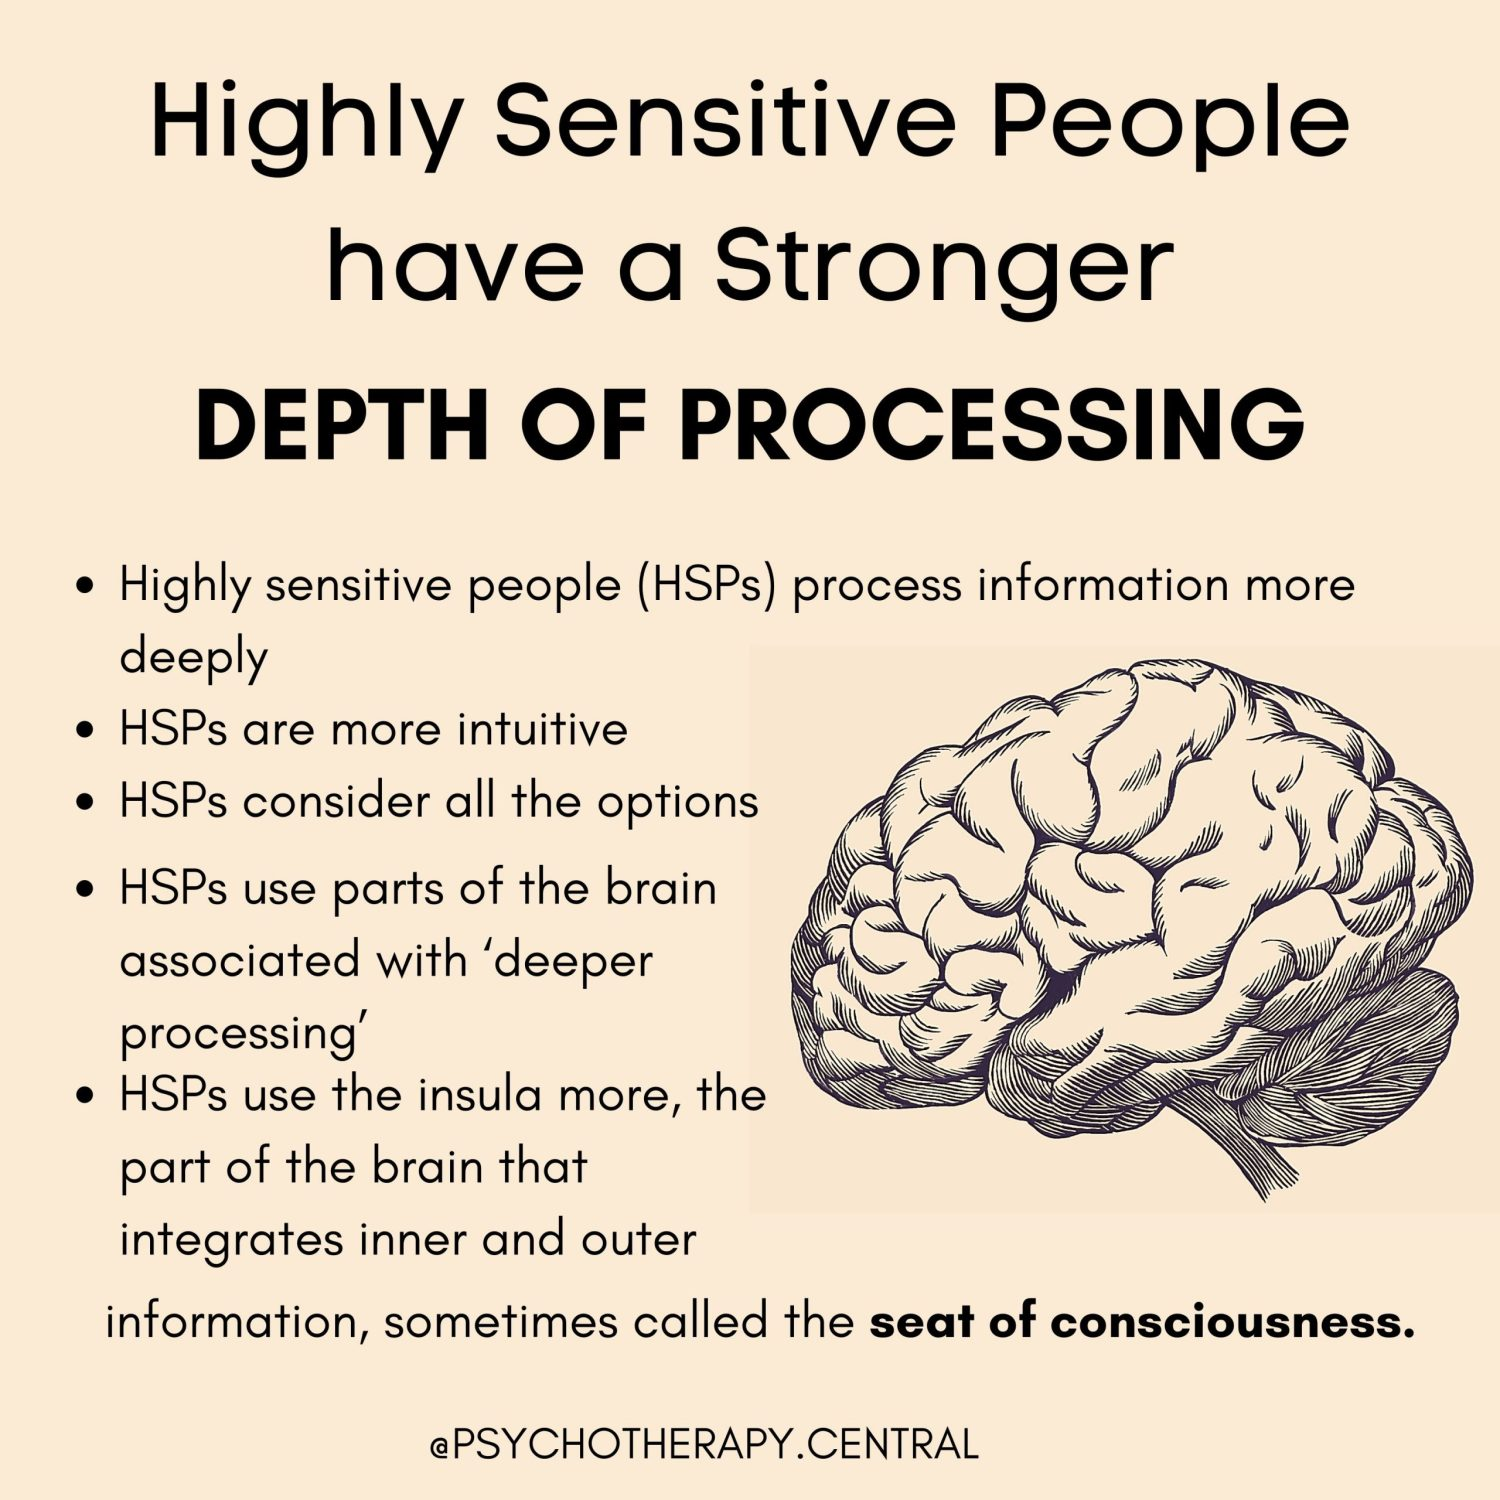 Highly Sensitive People Have a Stronger Depth of Processing